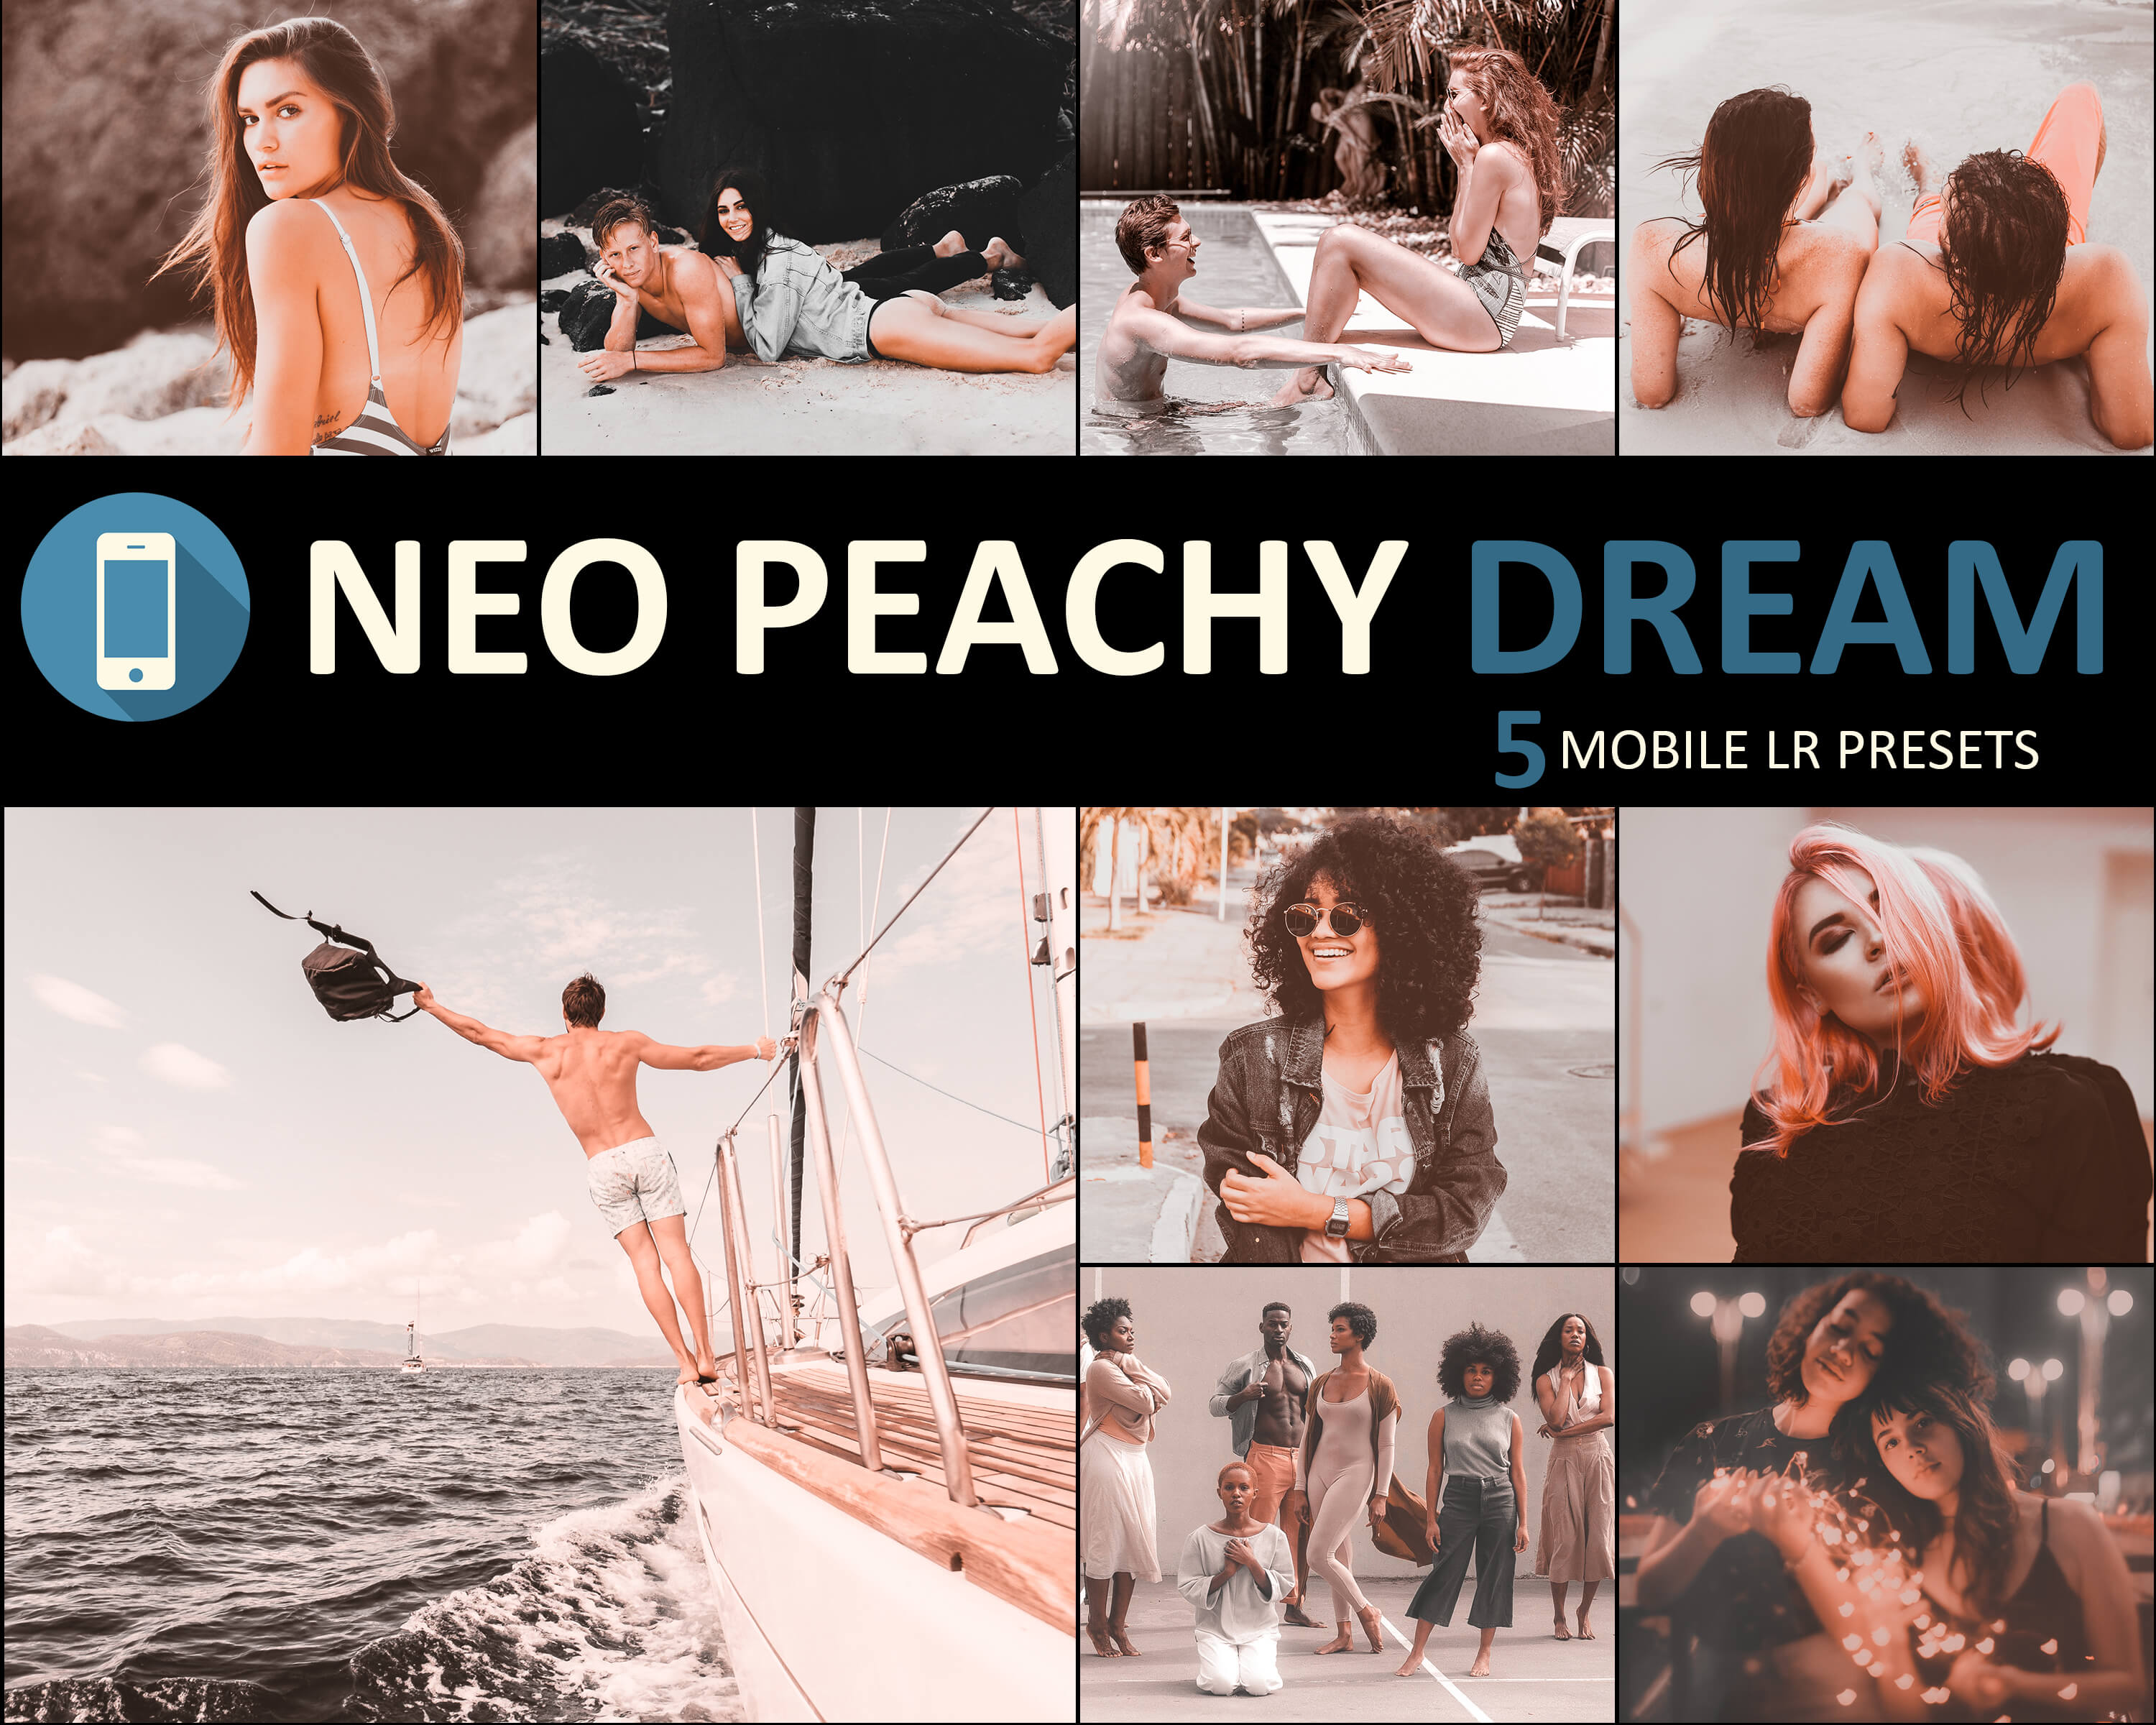 neo peachy dream mobile presets